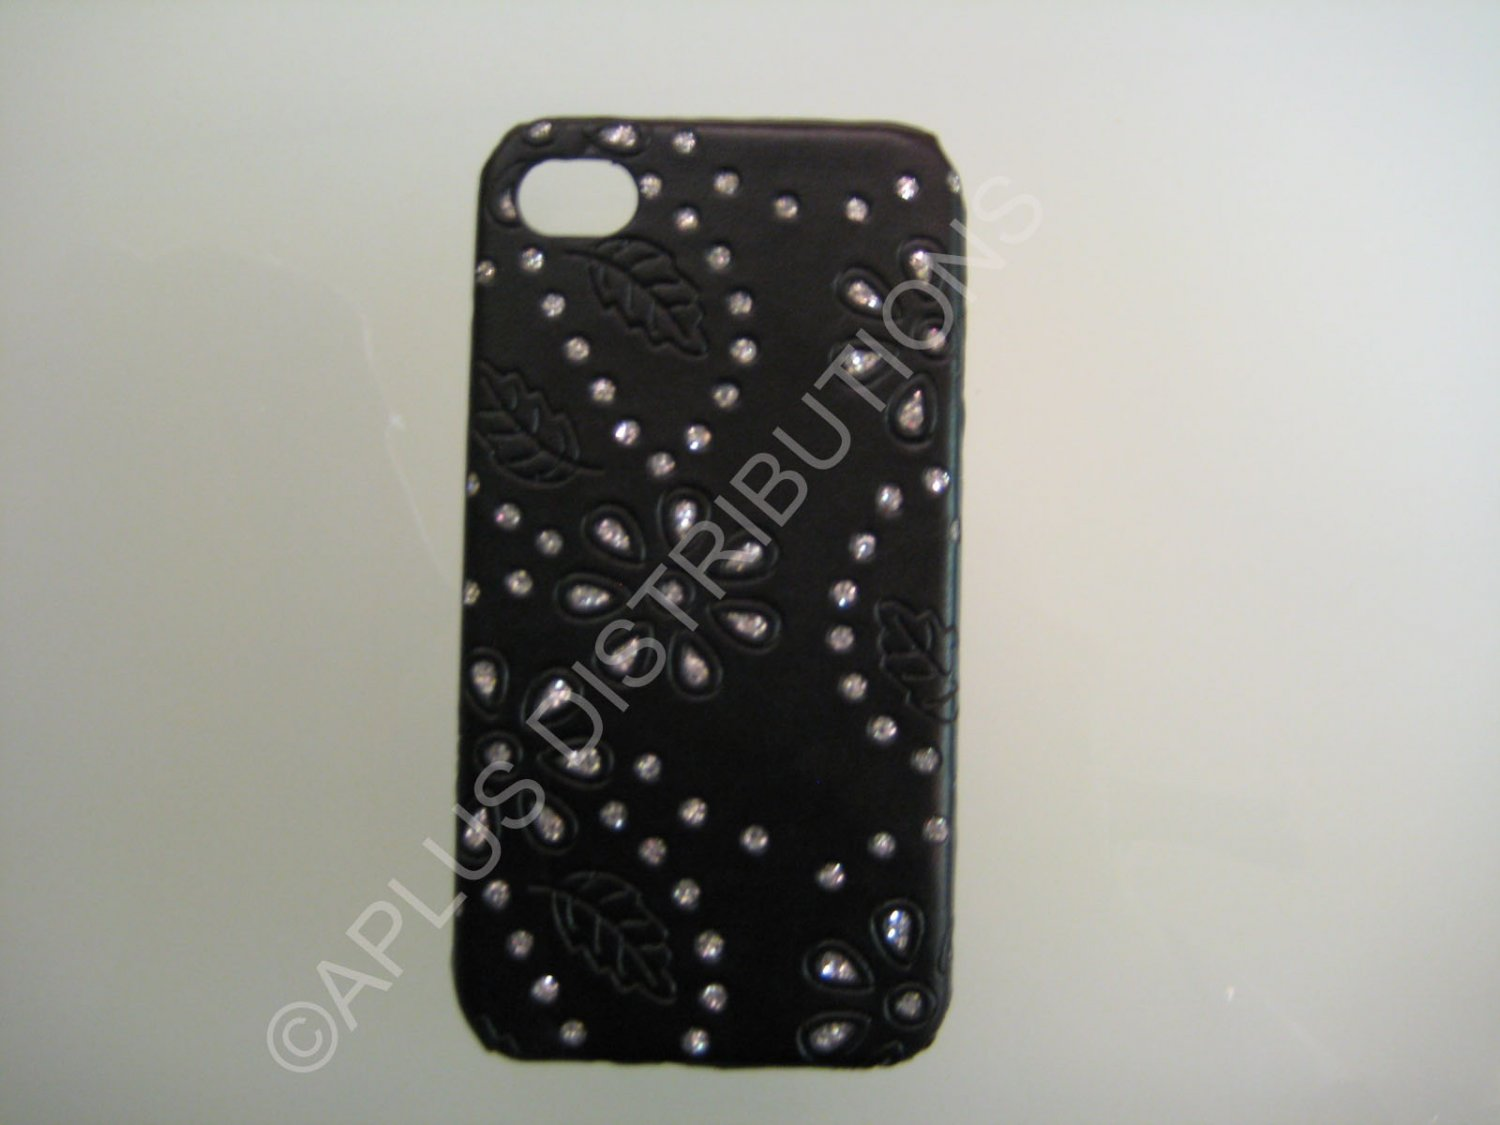 New Black Flower Vine Glitter Pattern Hard Protective Cover For iPhone 4 - (0046)